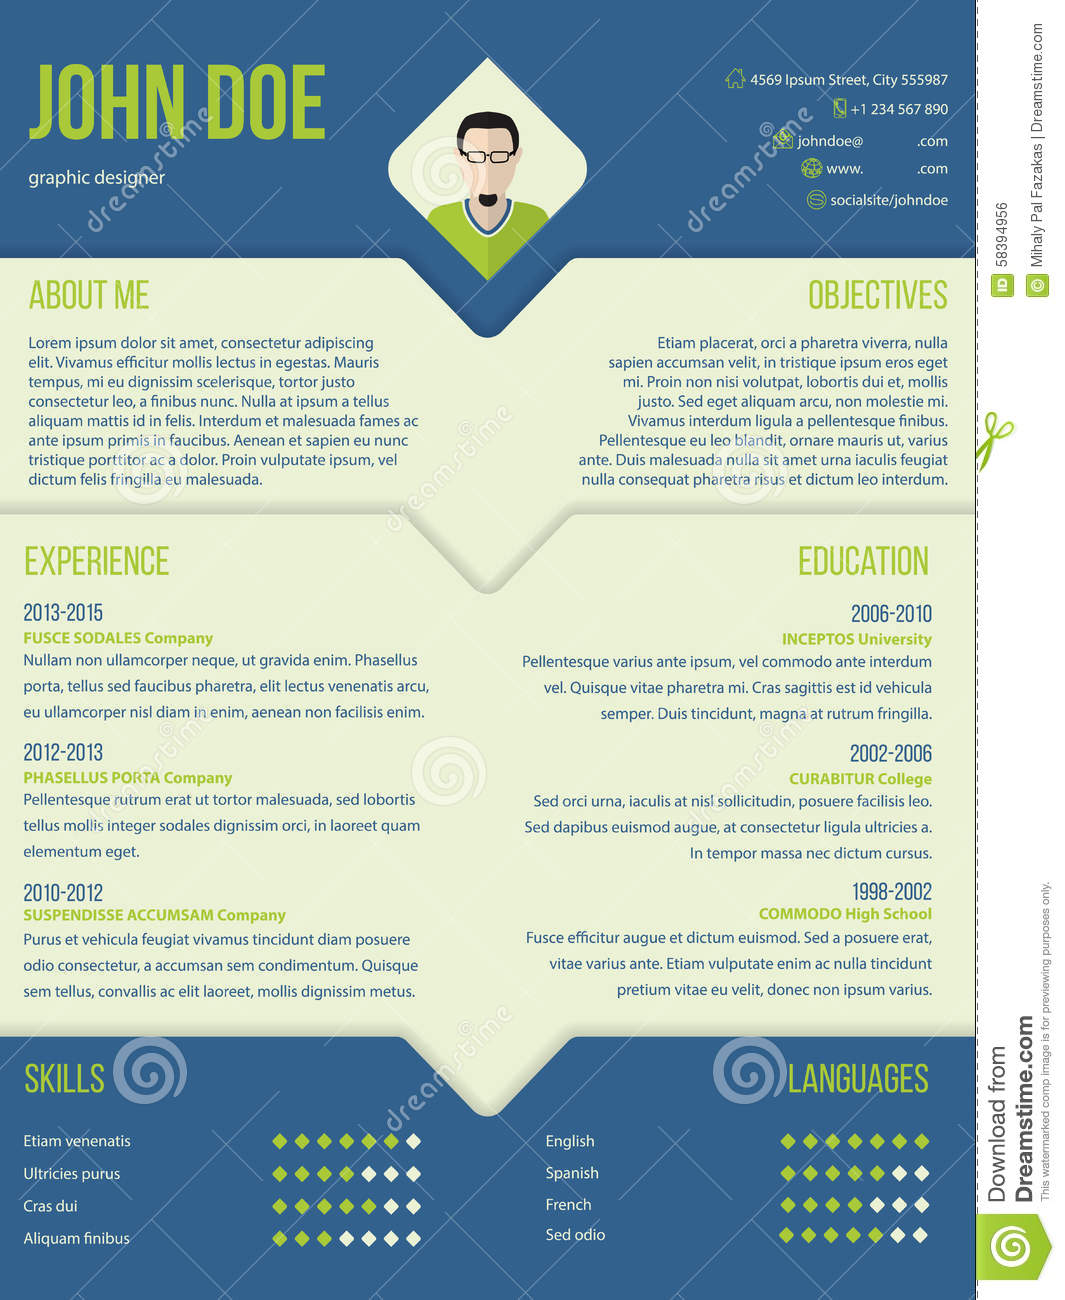 Modern curriculum cv resume template design in blue and green color ...